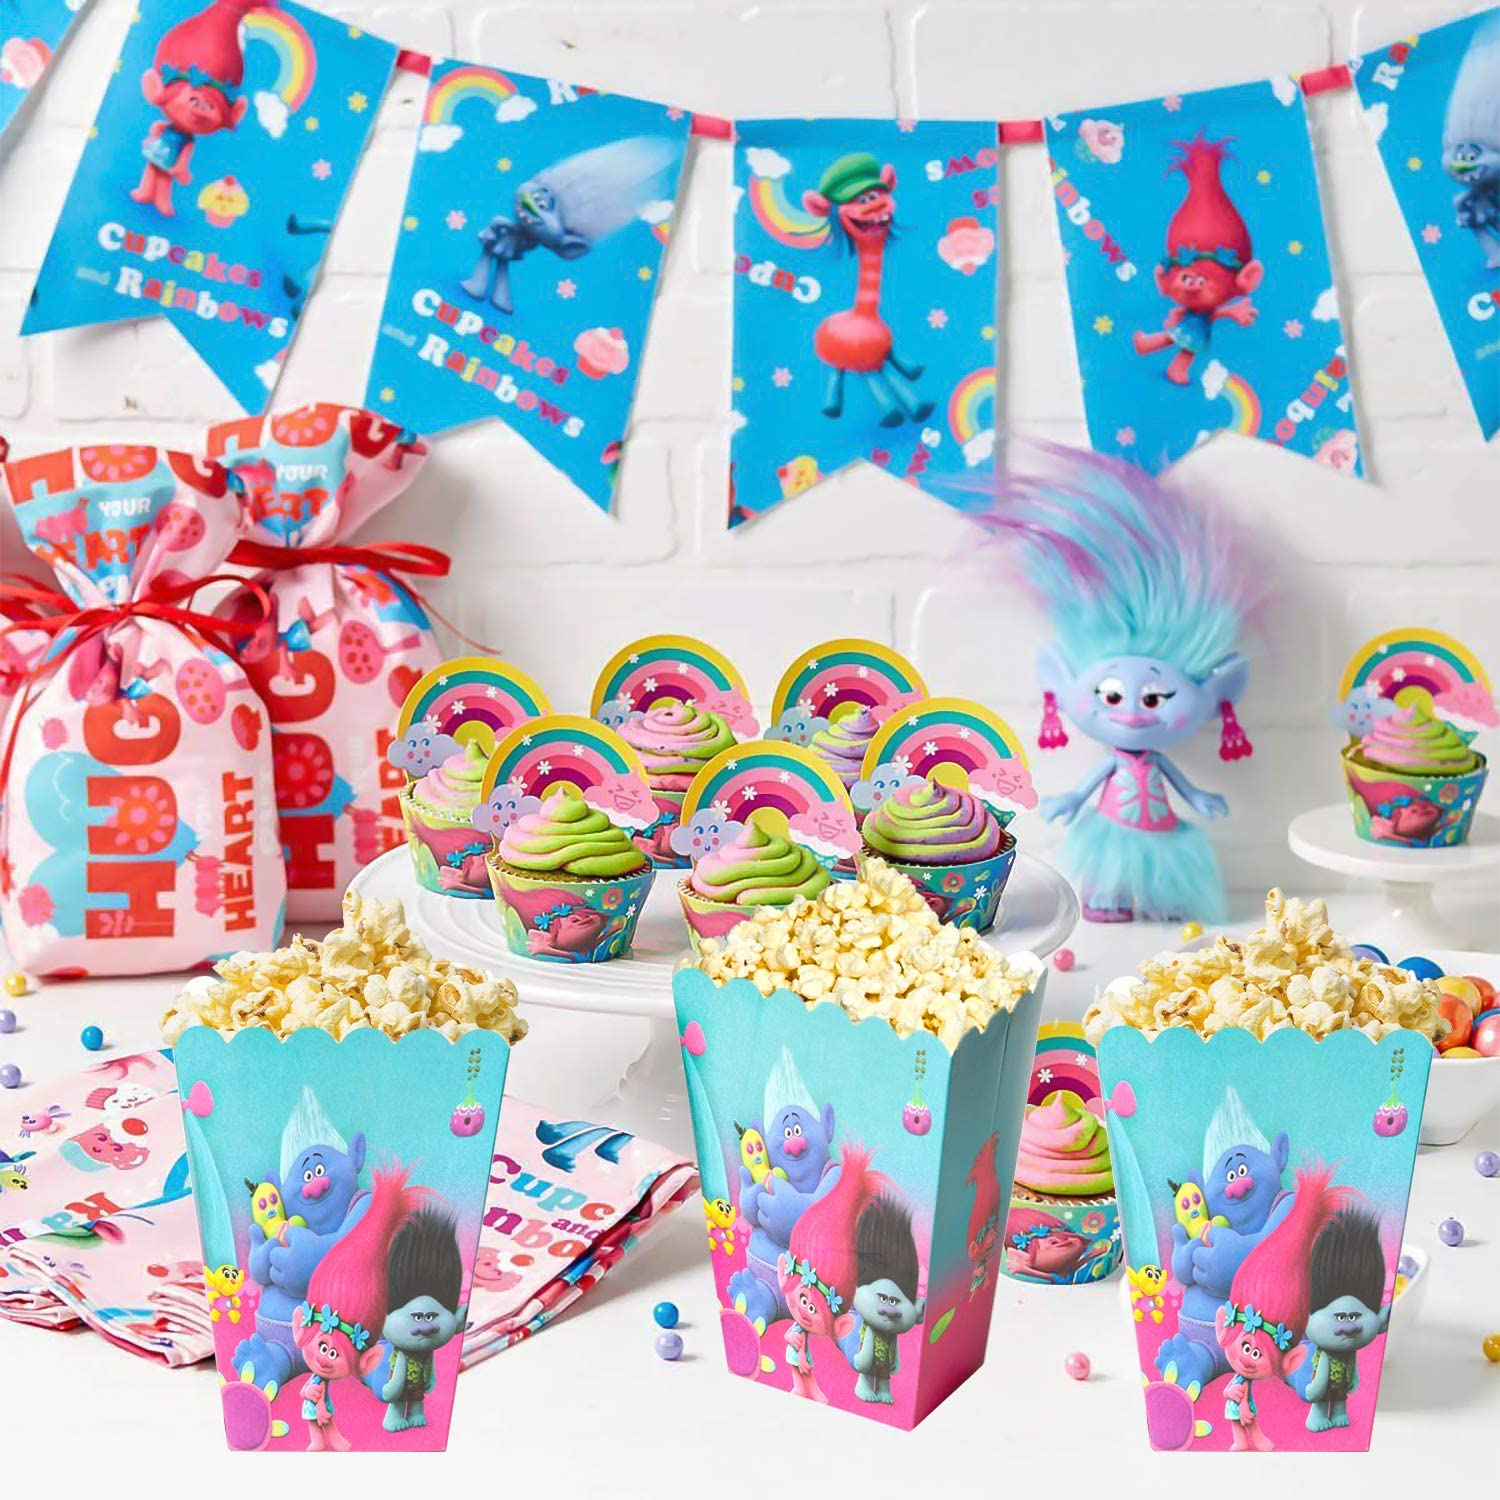 30 Pcs Blippi Party Popcorn Boxes Blippi Party Supplies Favors Candy Container for Birthday Theater Themed Parties Movie Nights Carnivals